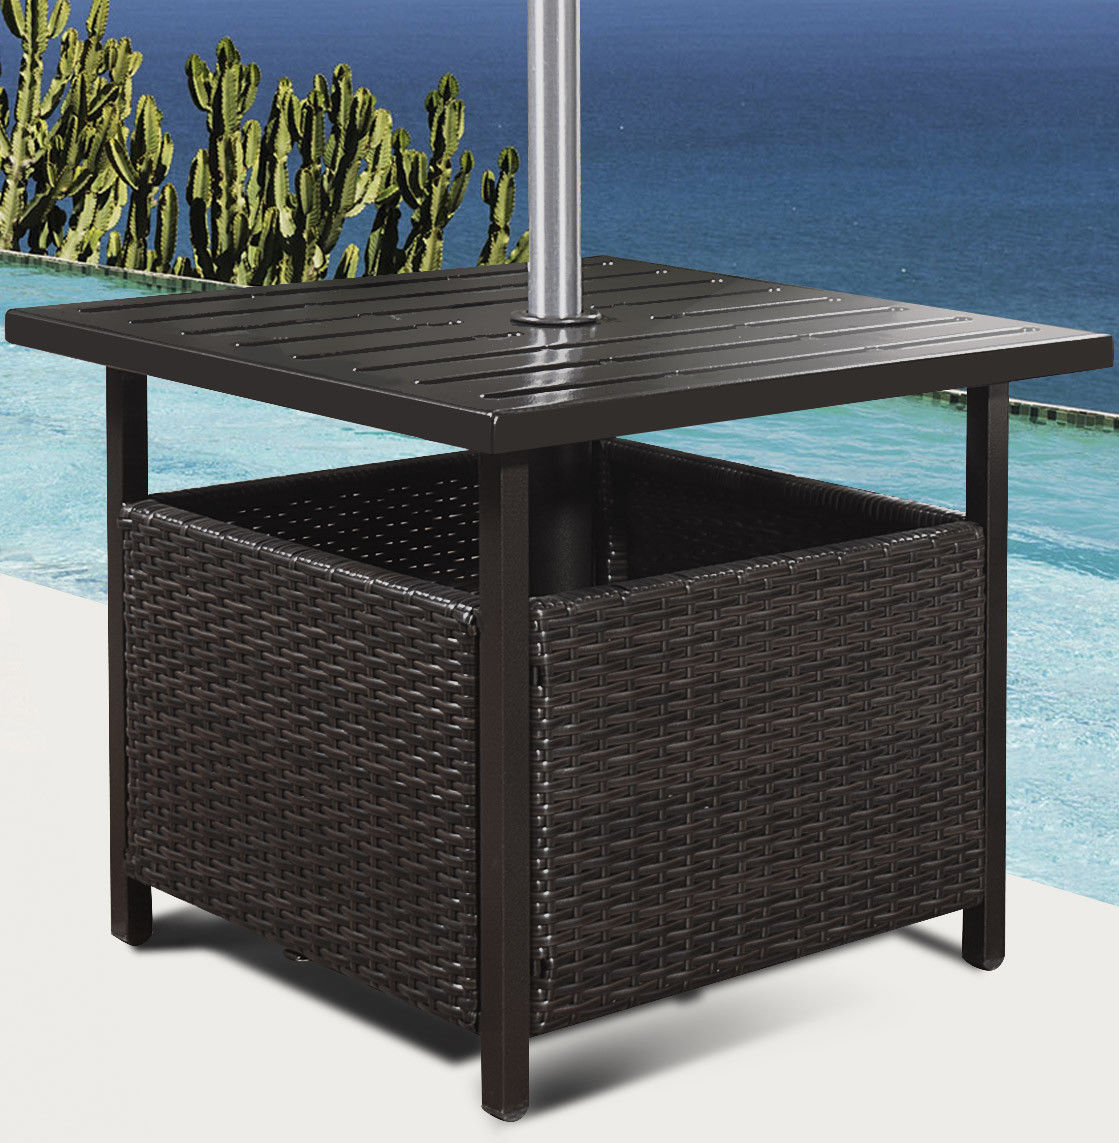 way brown rattan wicker steel side table outdoor furniture deck foldable accent garden patio pool pottery barn changing with drawers narrow dining indoor teak round silver bedside